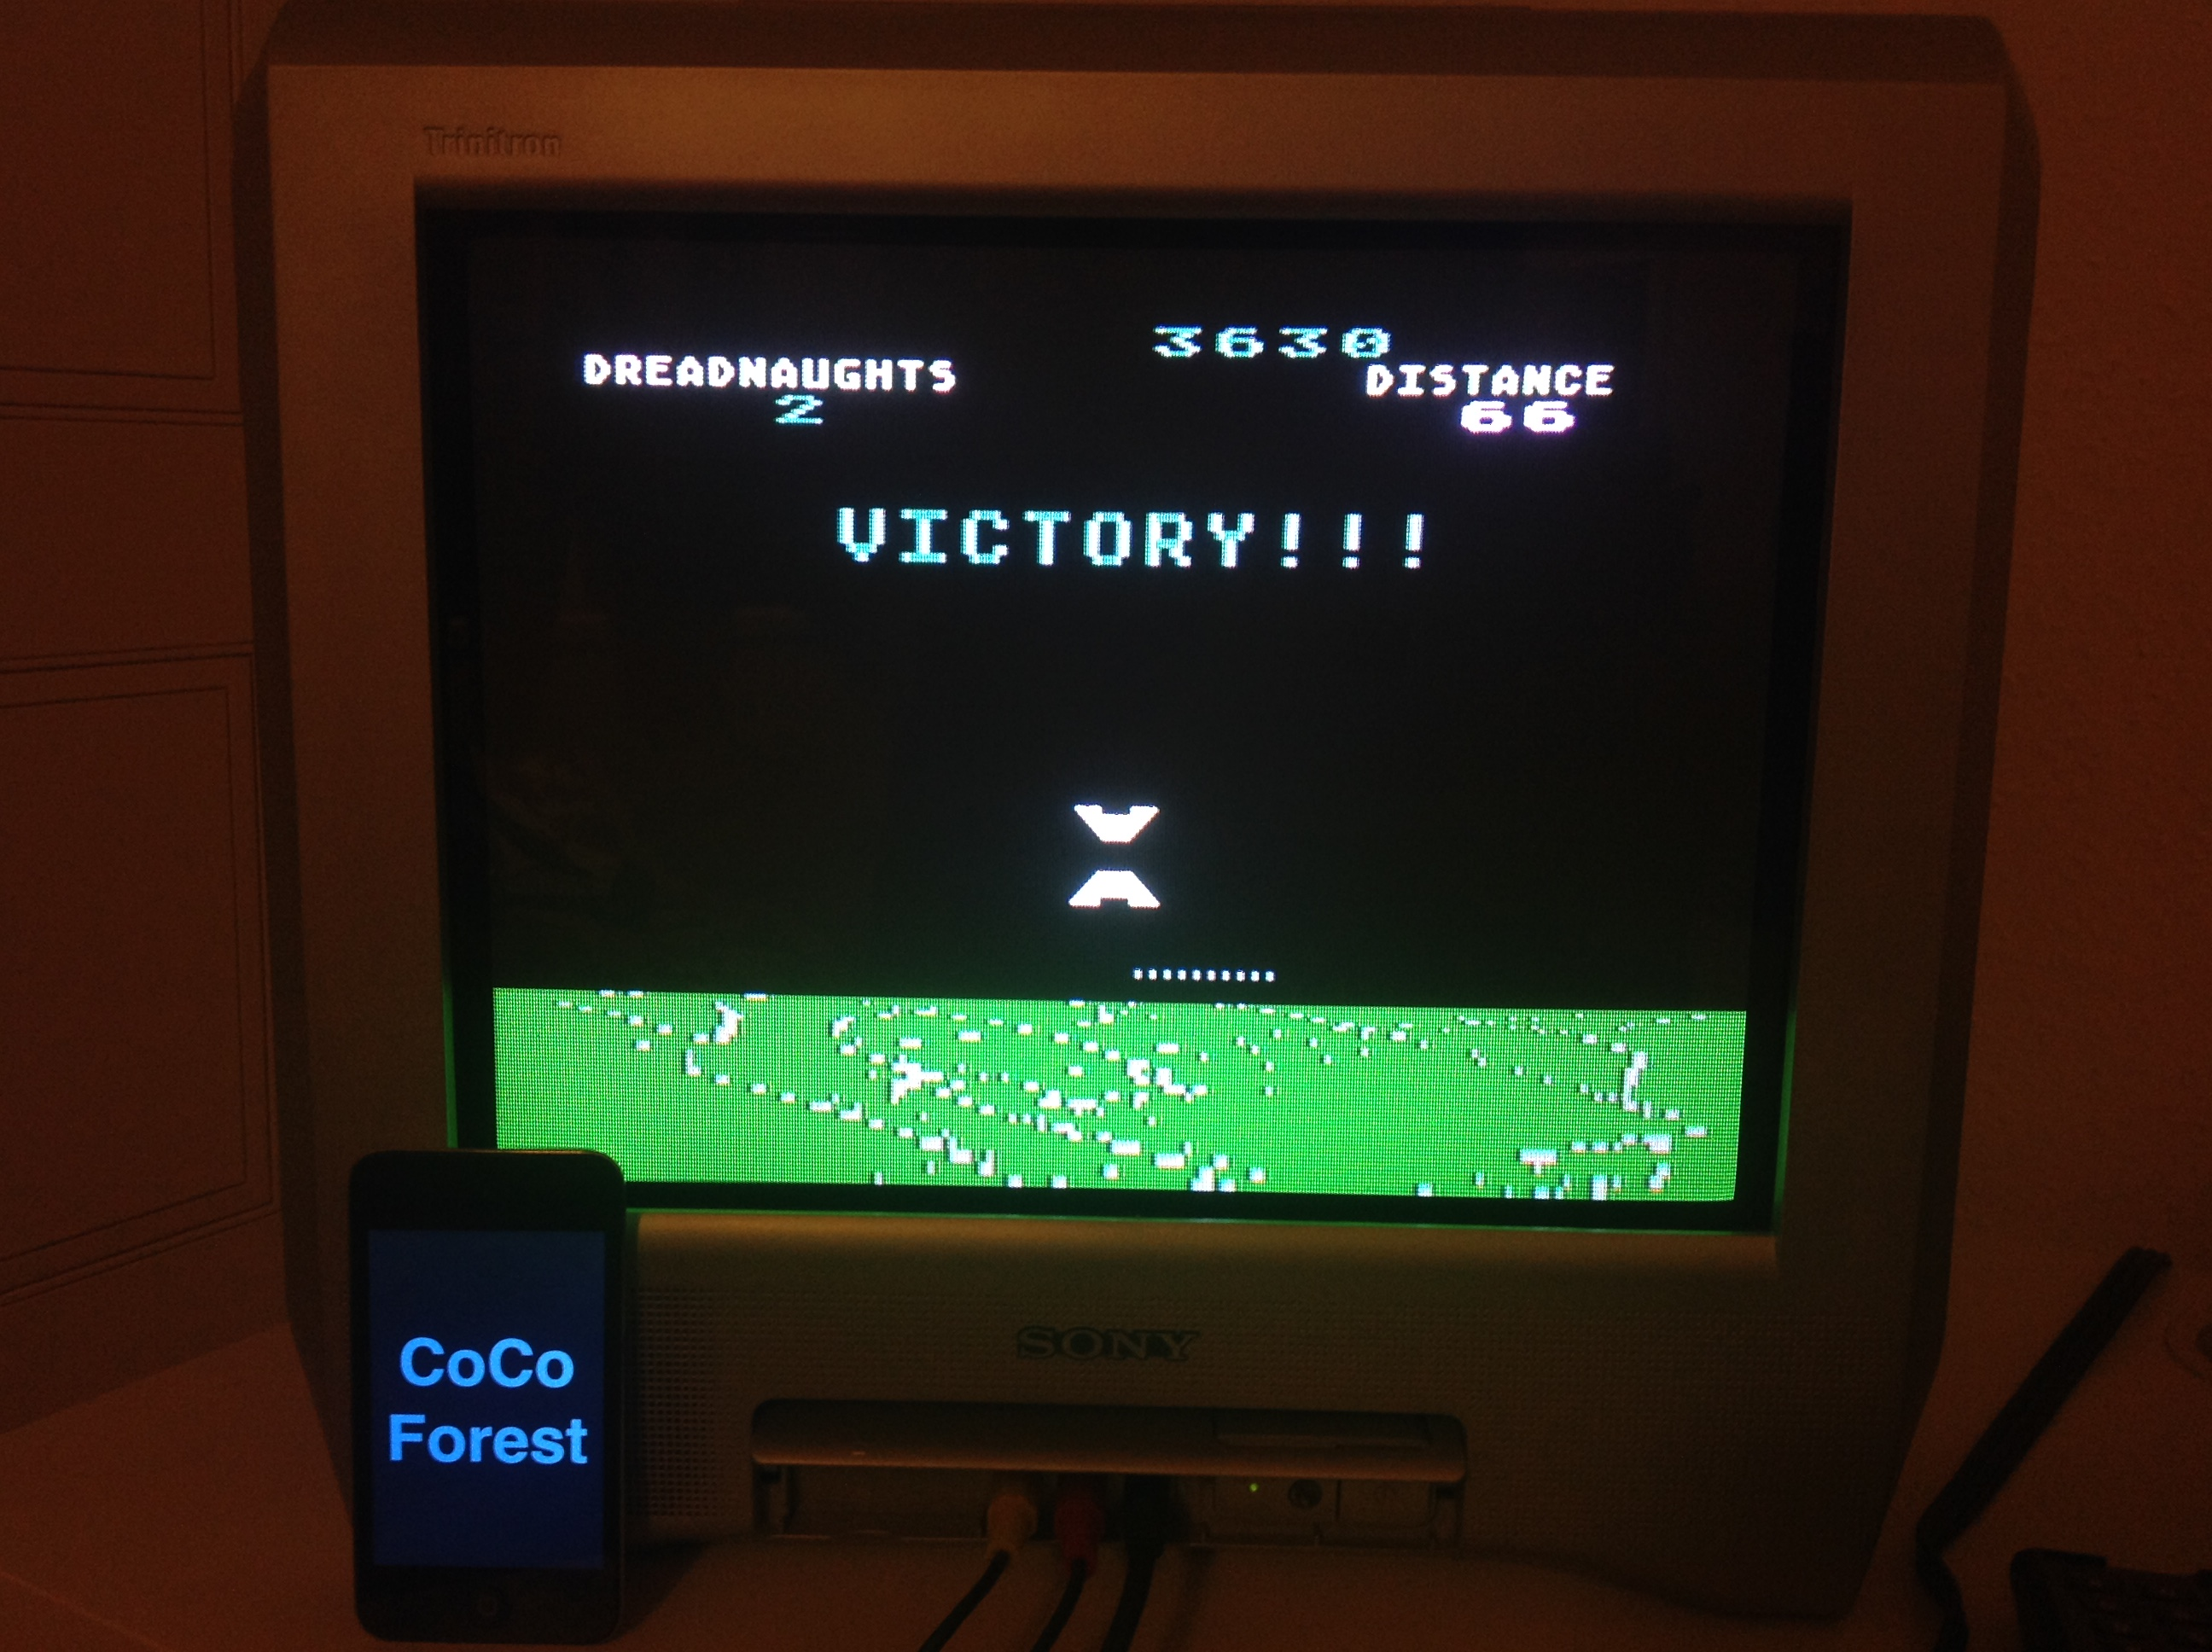 CoCoForest: The Dreadnaught Factor (Atari 5200) 3,630 points on 2015-11-10 11:49:59